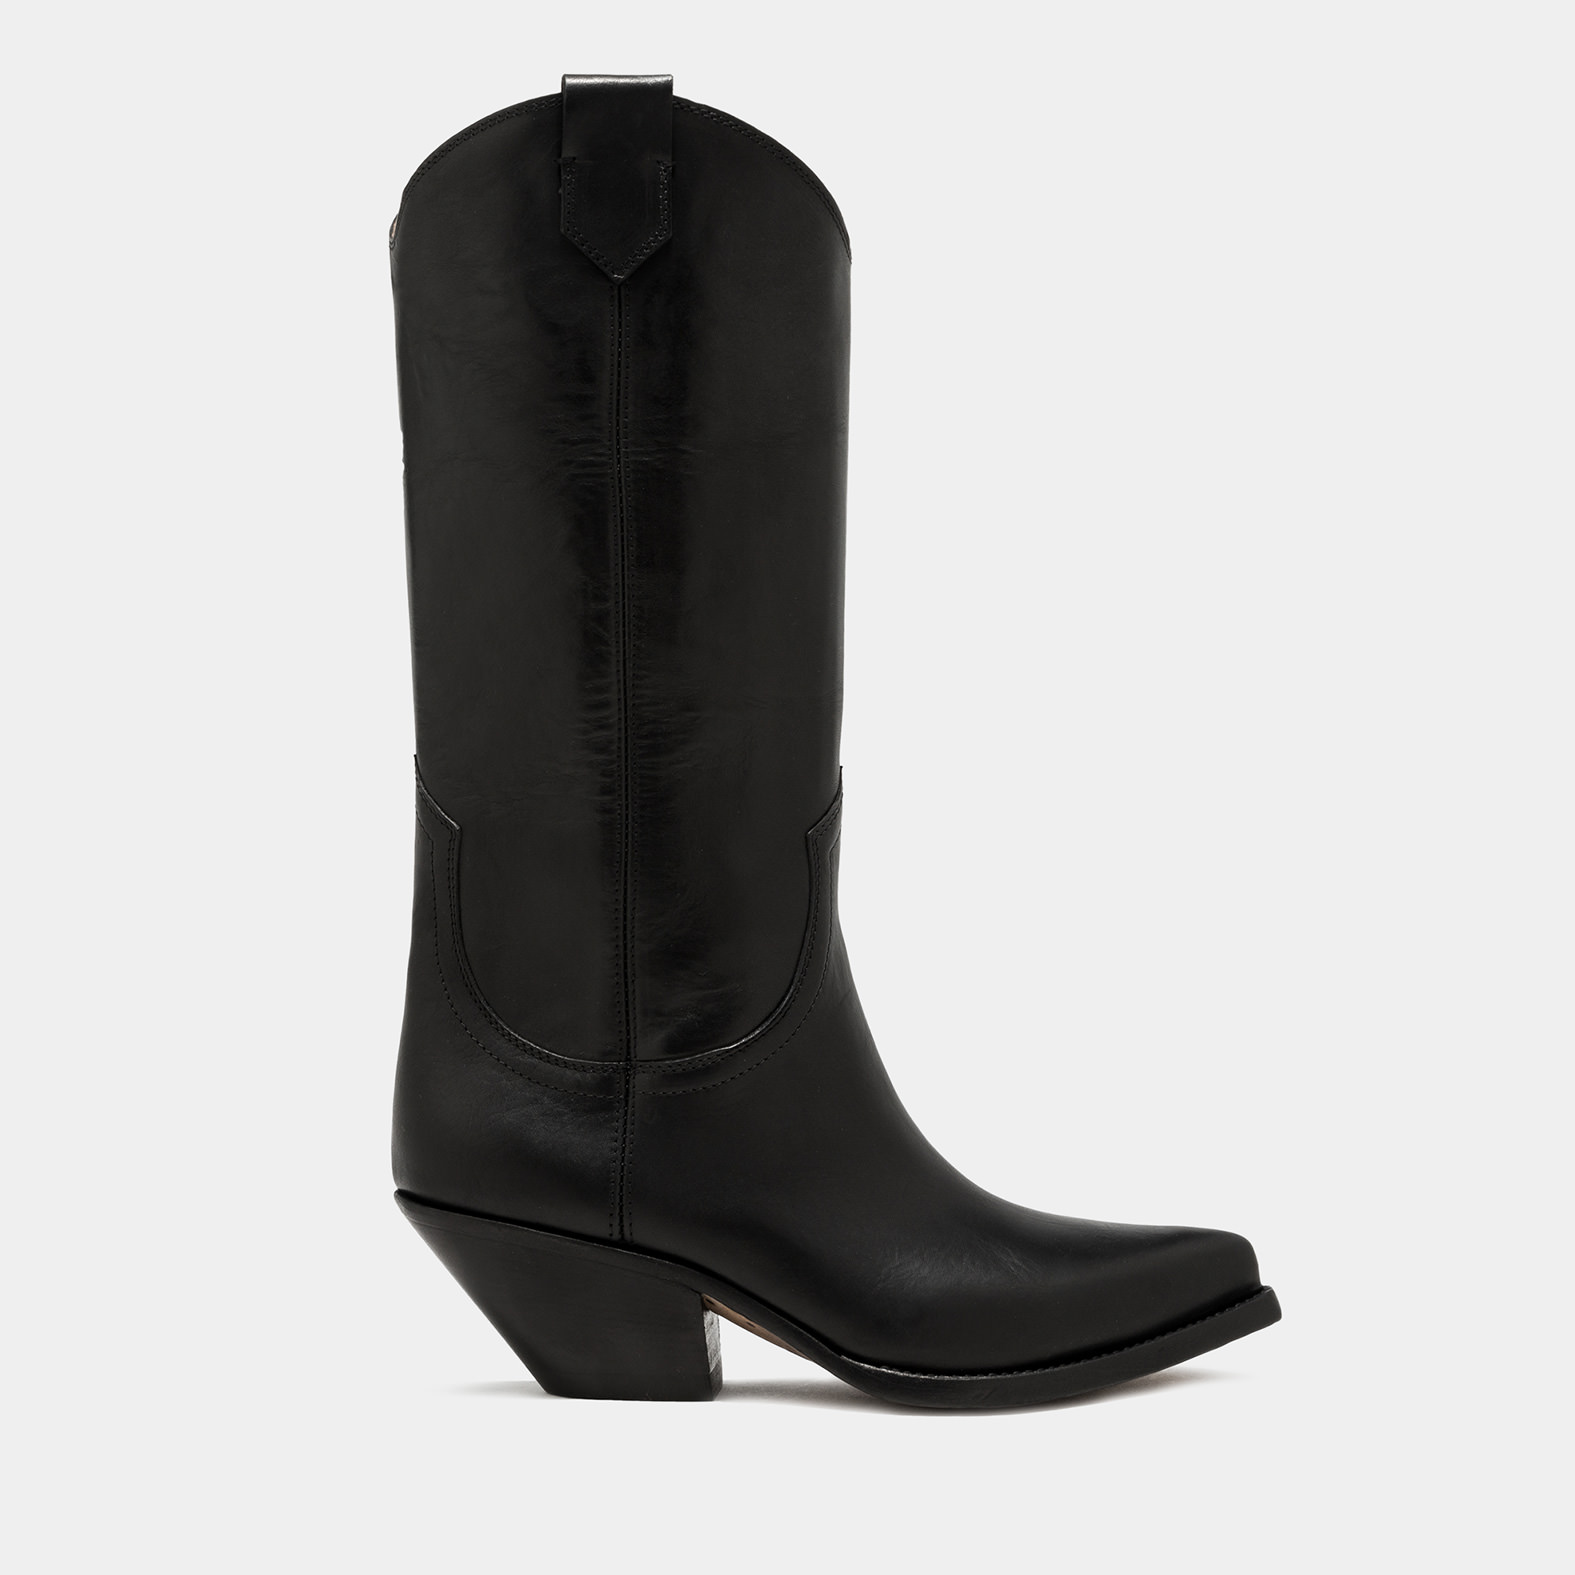 BUTTERO: ELISE HIGH HEEL DURANGO BOOTS IN BLACK LEATHER